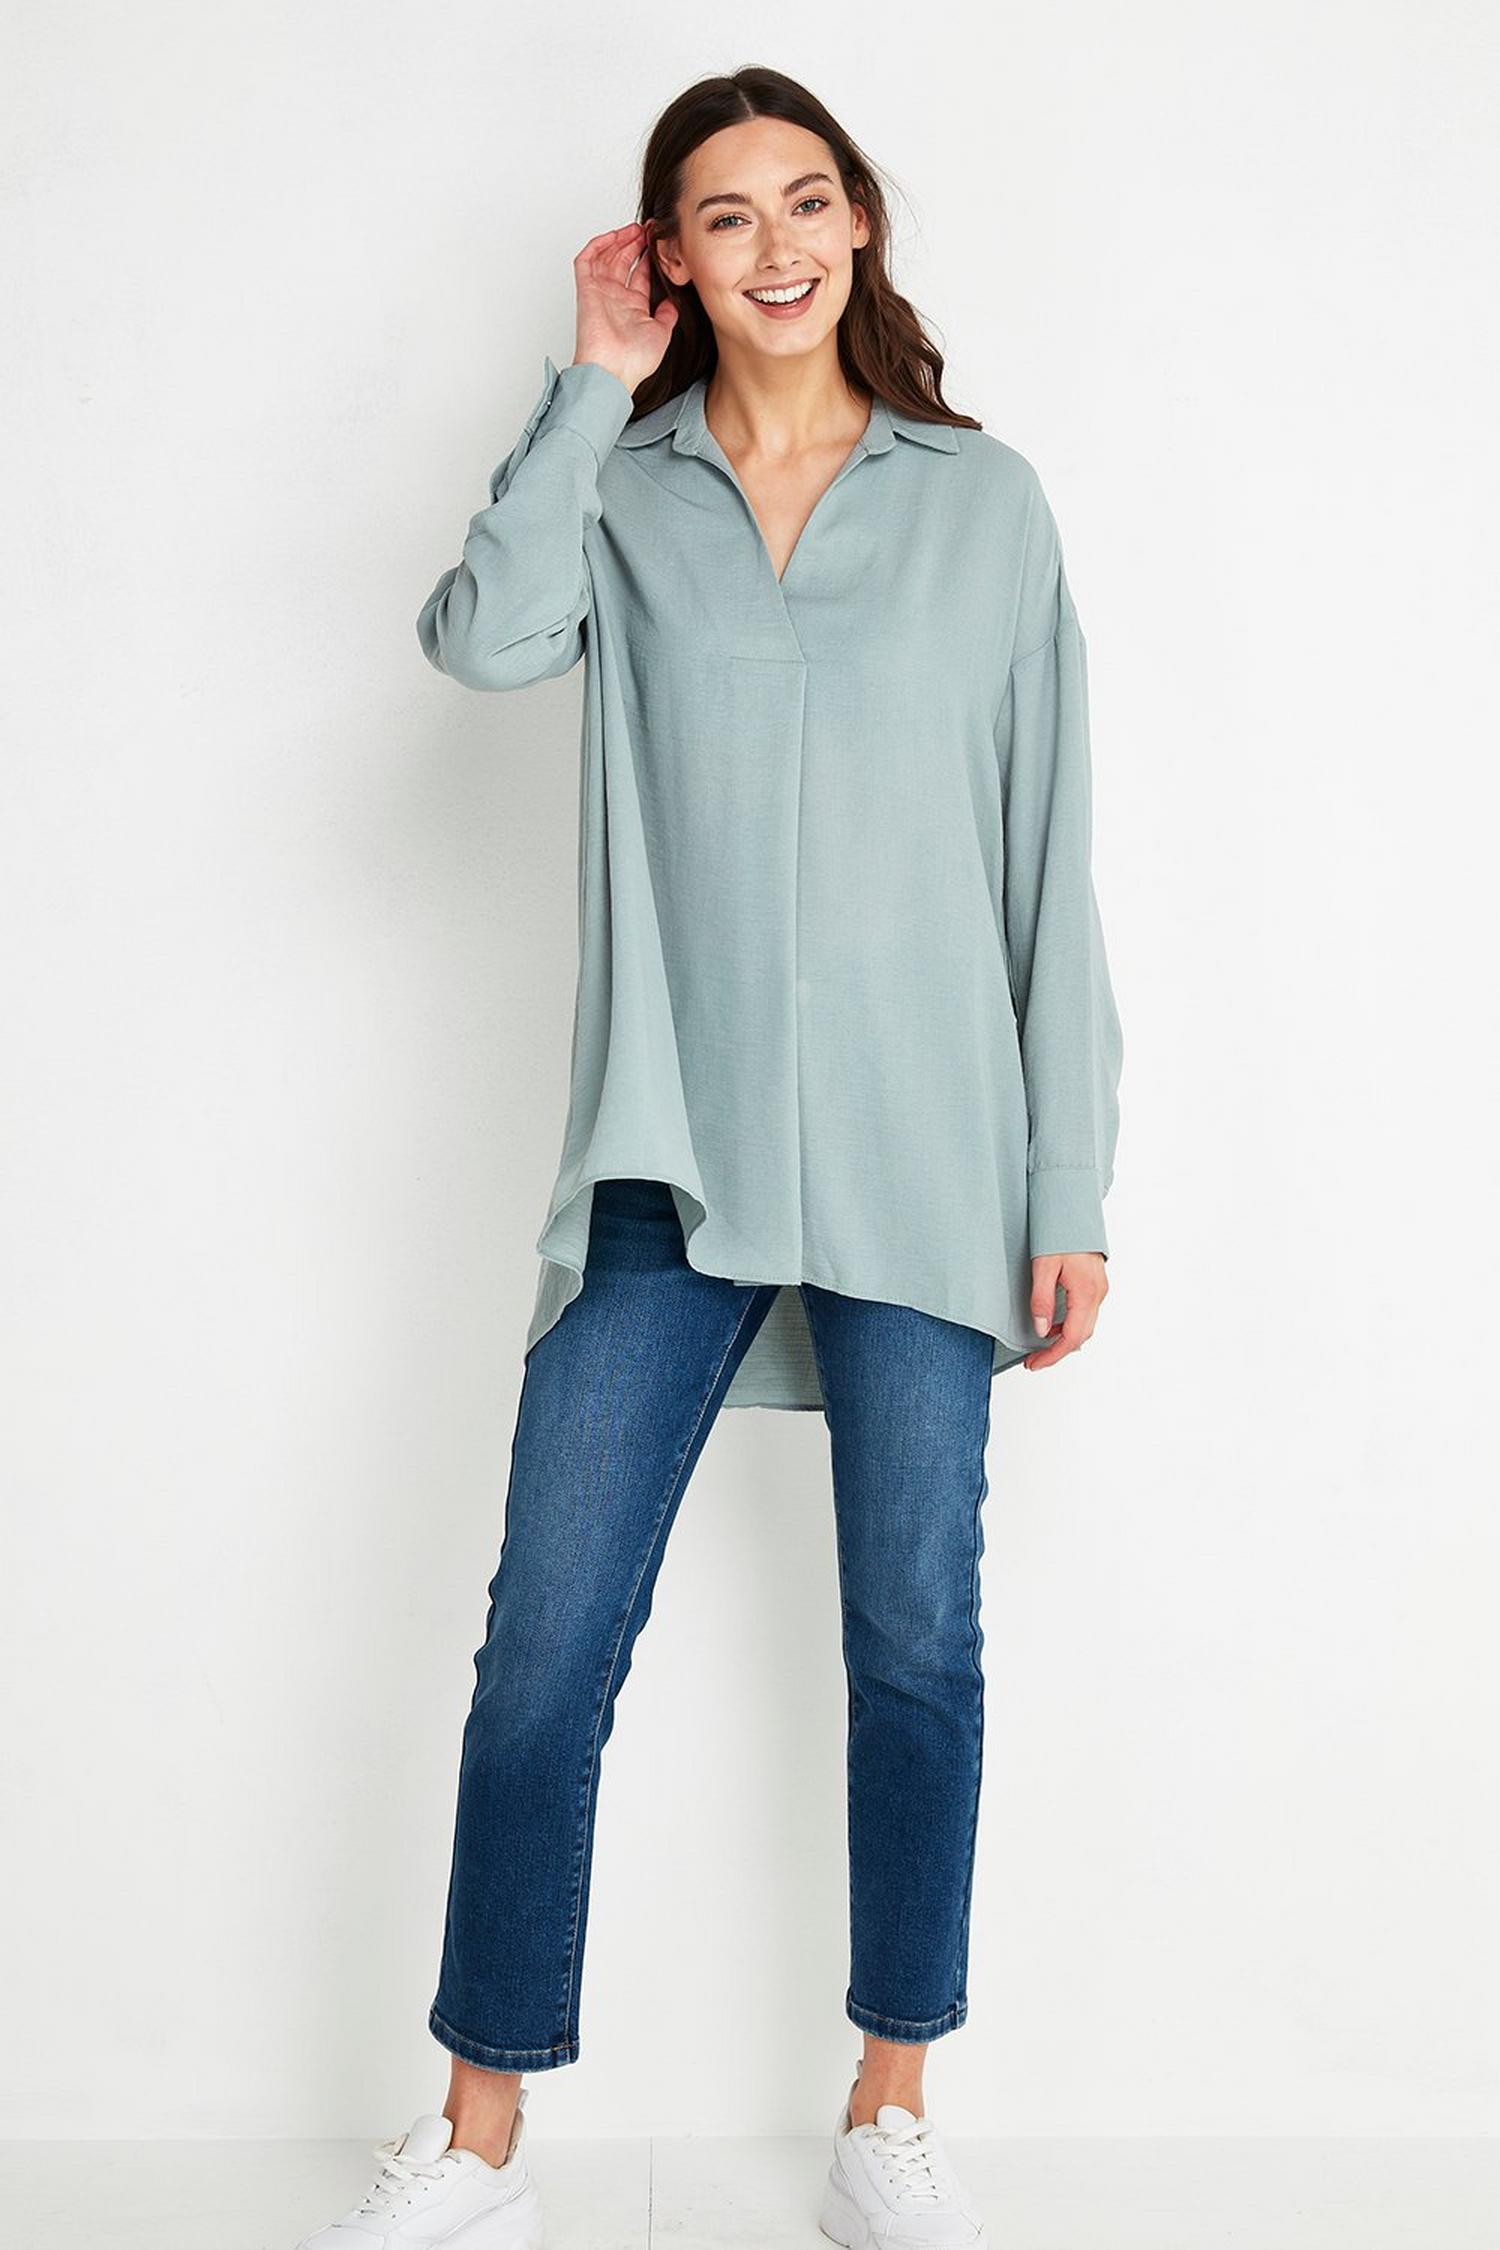 106 TALL Blue Shirt image number 3